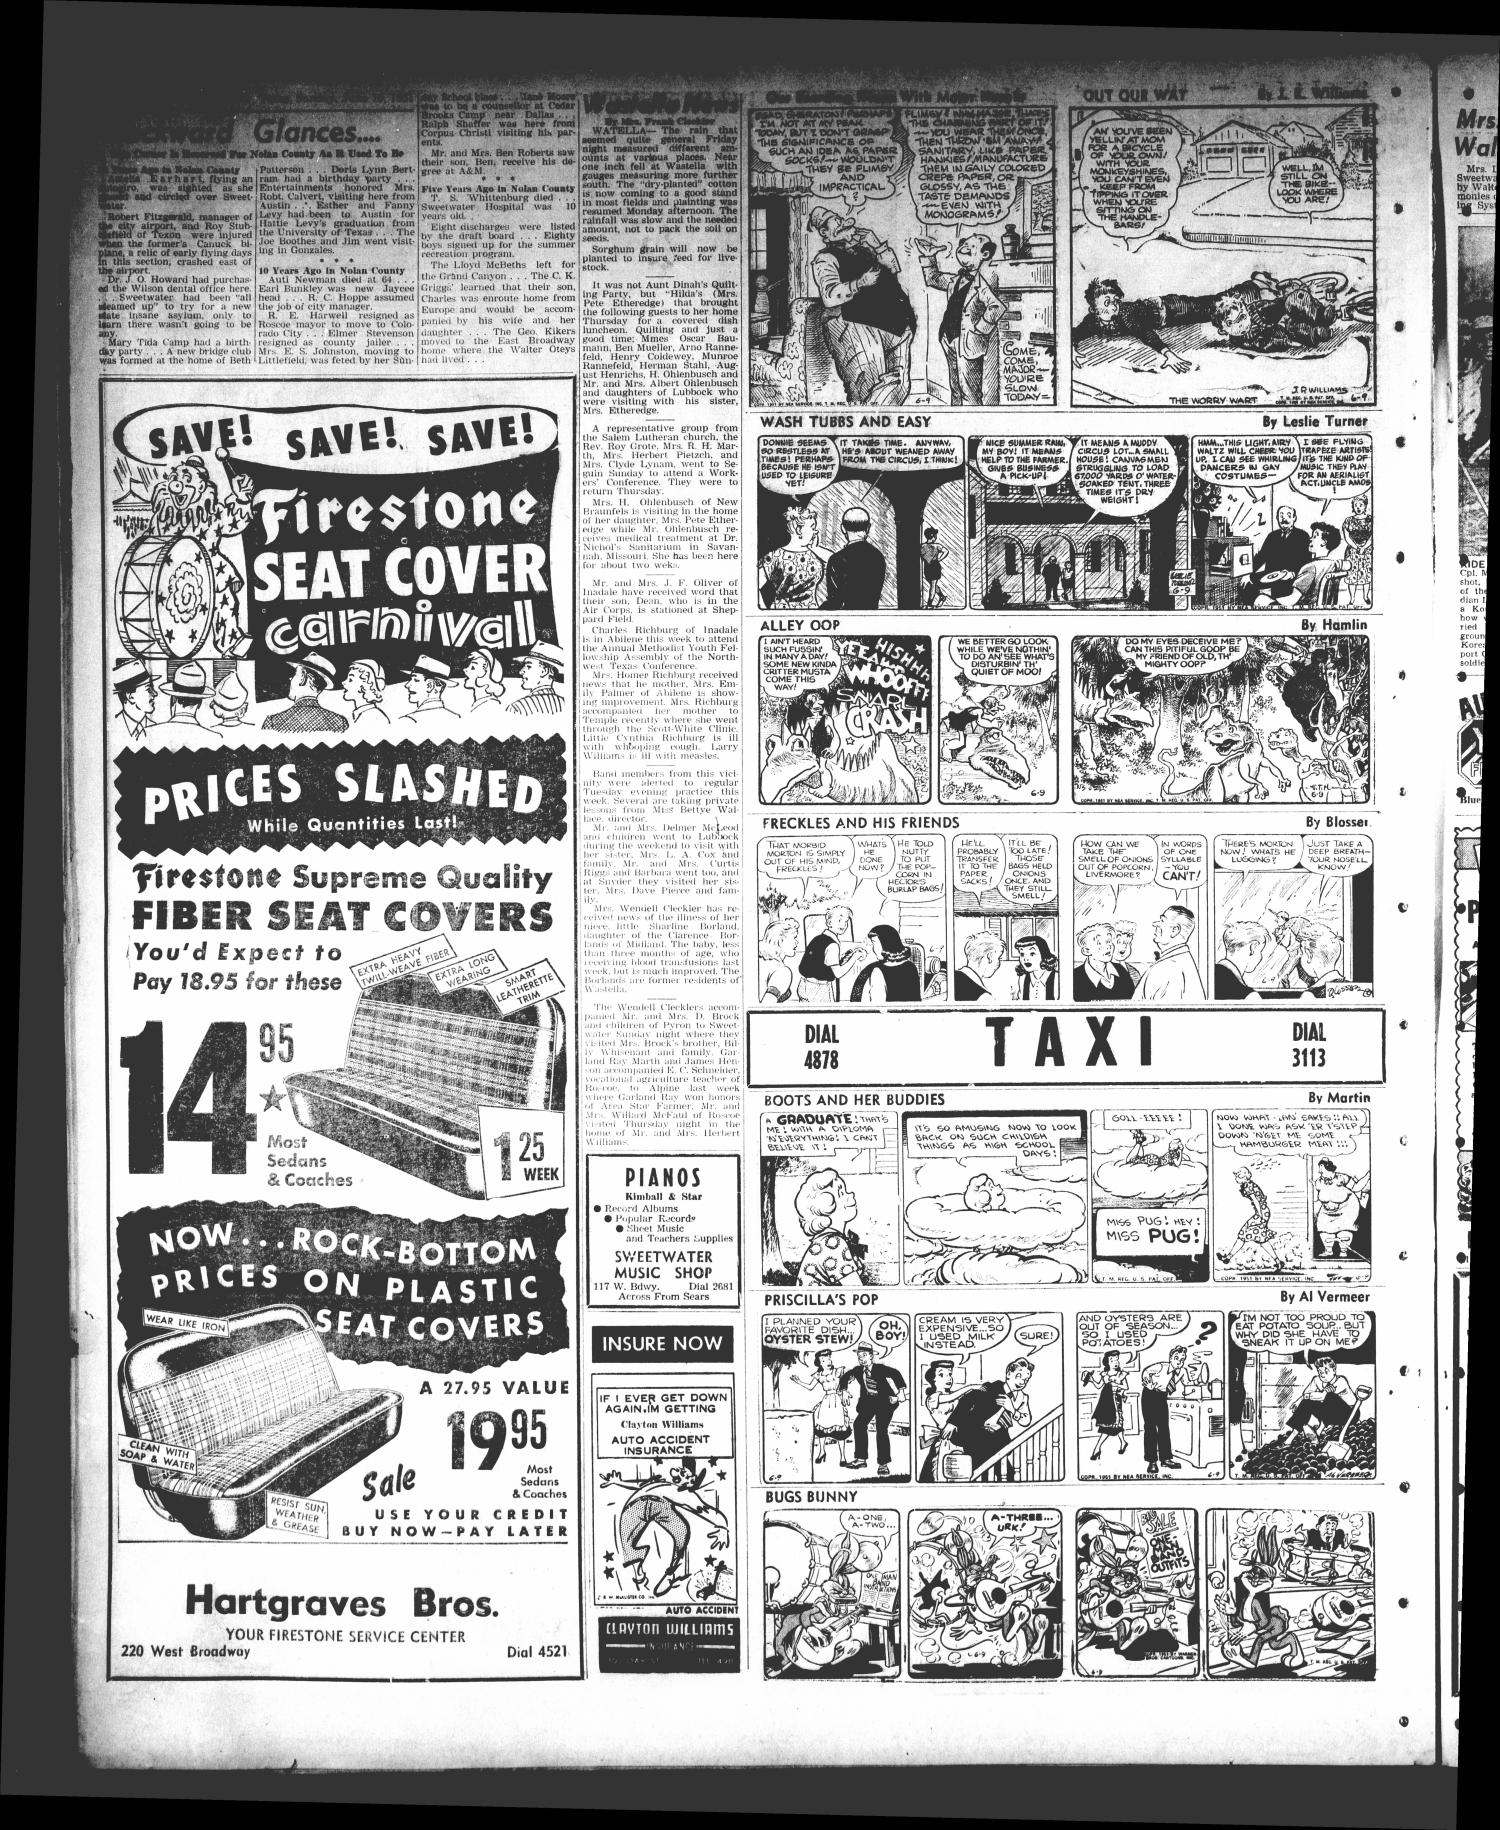 Sweetwater Reporter (Sweetwater, Tex ), Vol  54, No  137, Ed  1